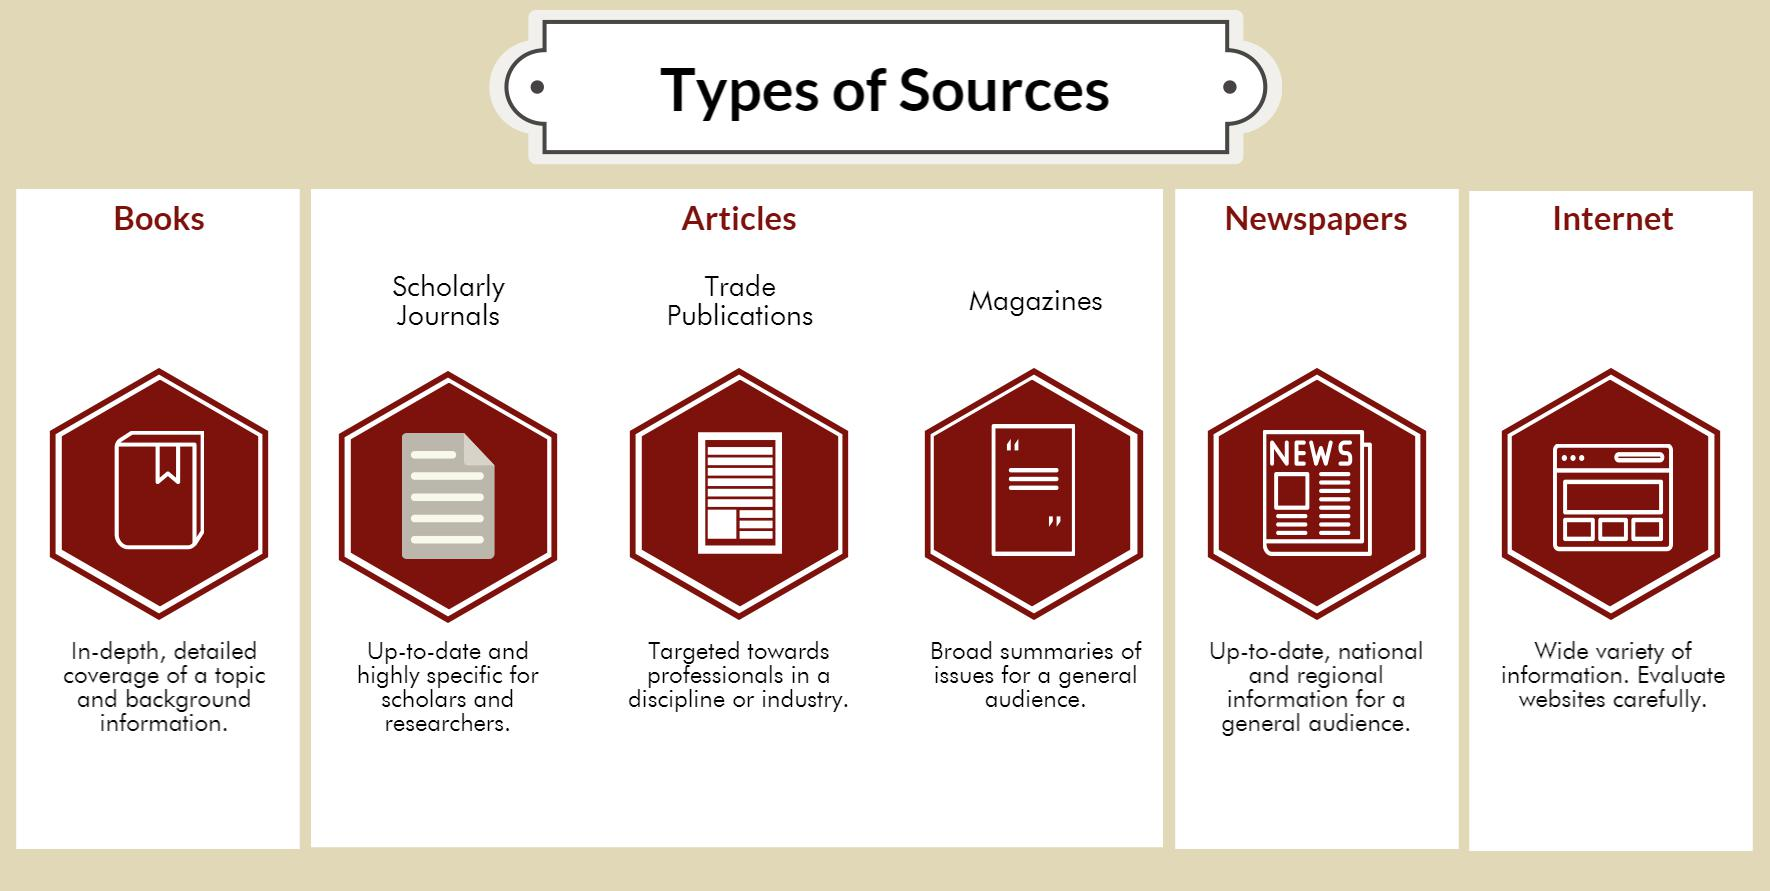 [ types of sources: background information, in-depth book, journals, professional sources, magazines, newspapers, web ]